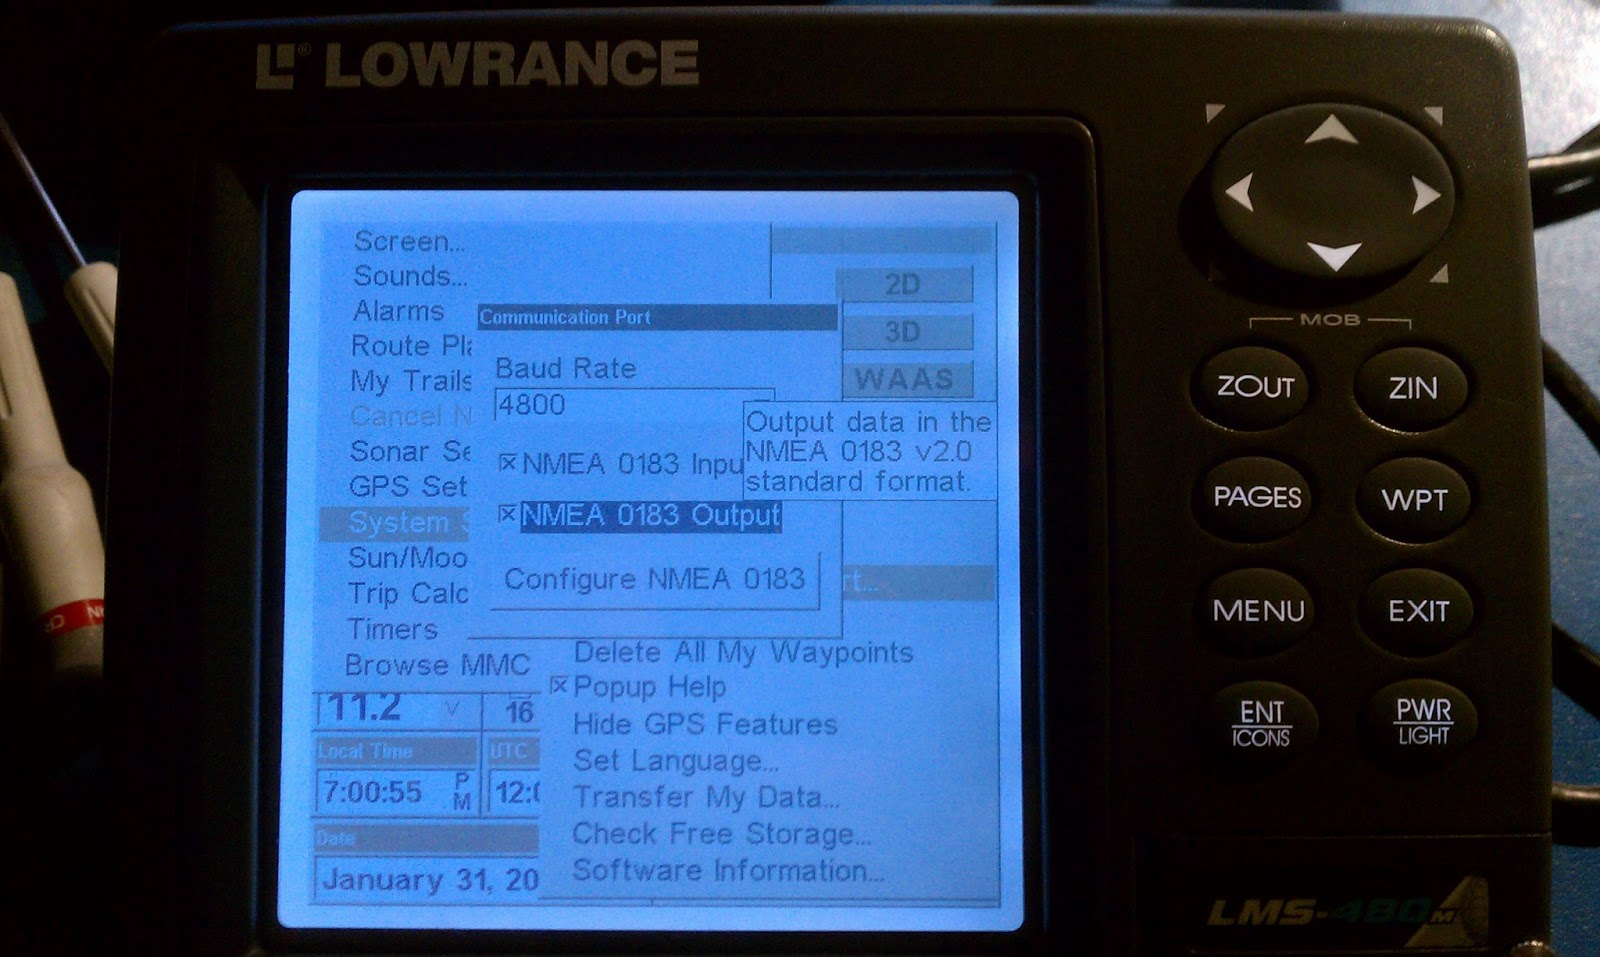 small resolution of lowrance gps antenna wiring diagram better wiring diagram online lowrance hds troubleshooting lowrance nmea 0183 wiring diagram free download